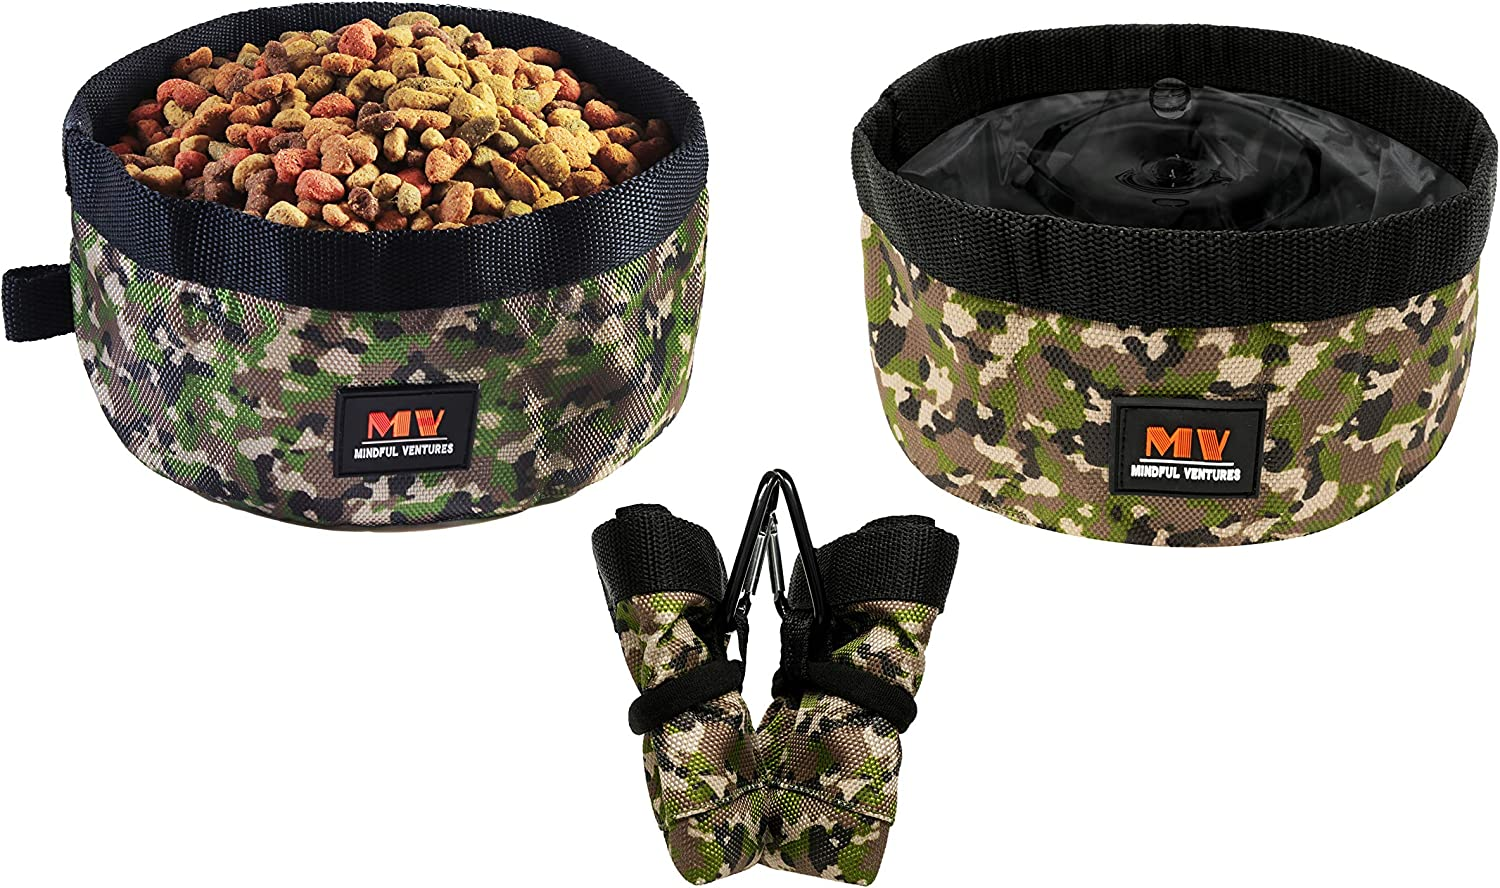 Mindful Ventures Collapsible Dog Bowl | 2 Pack | Portable Dog Water & Food Bowls | Travel Hiking Gear | Foldable & Clip | Perfect for Medium to Large Dogs | Waterproof Fabric